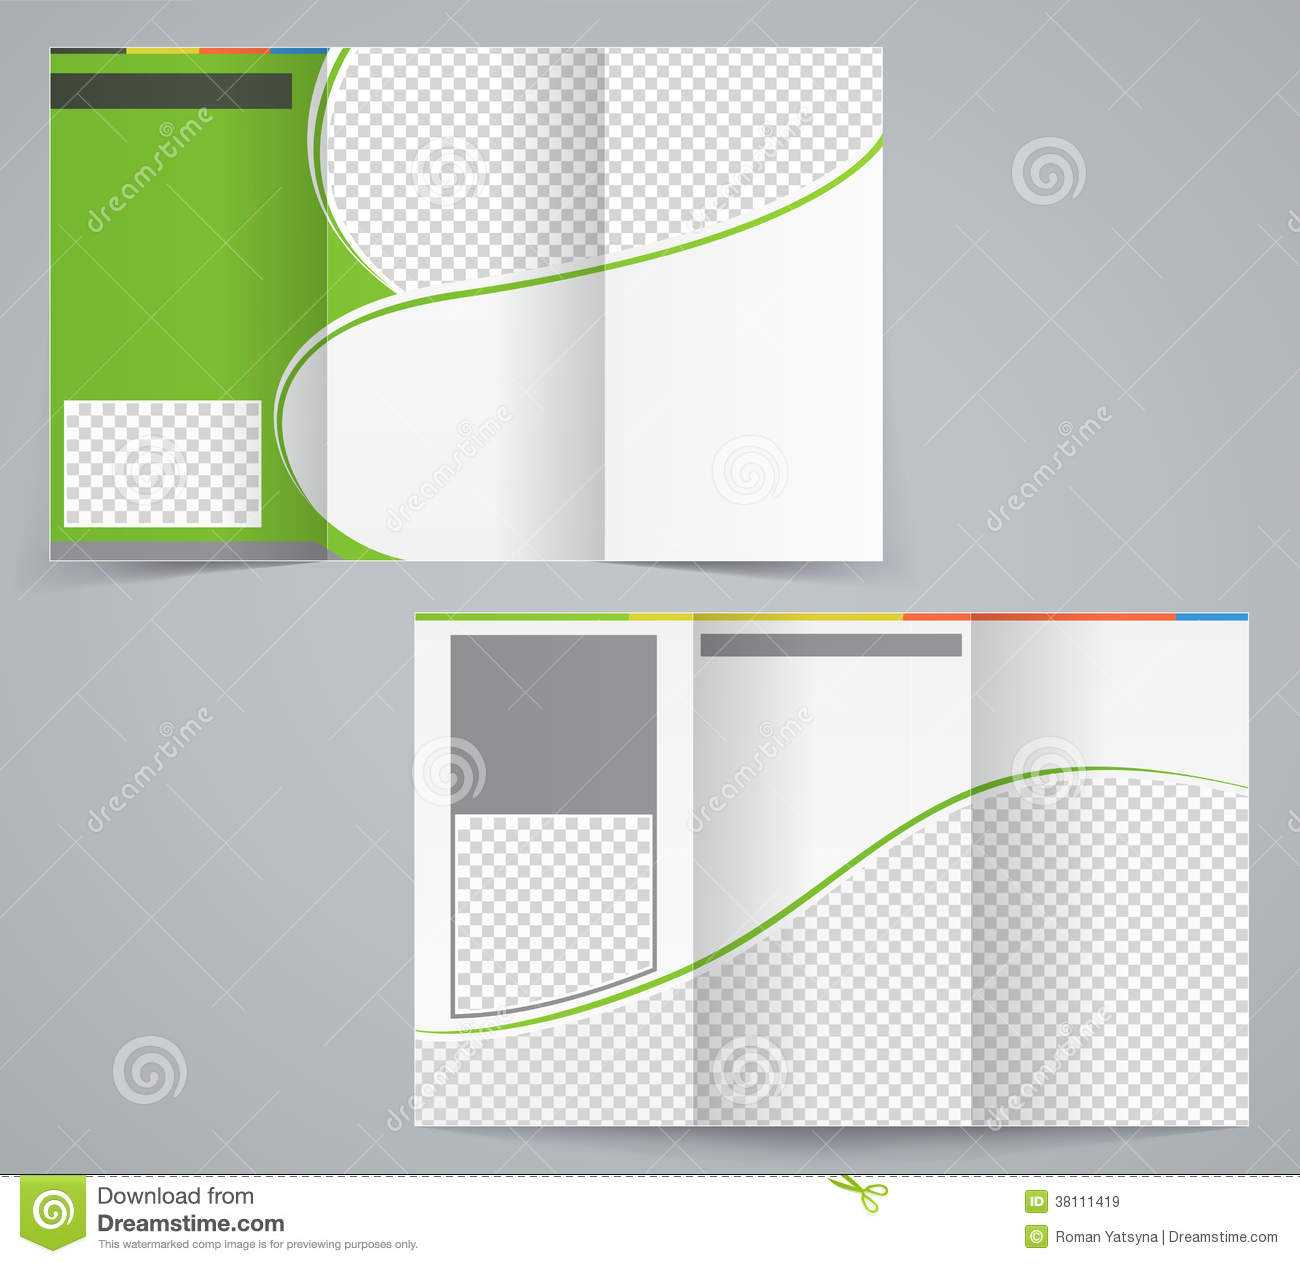 Tri Fold Business Brochure Template, Vector Green Stock Inside Illustrator Brochure Templates Free Download